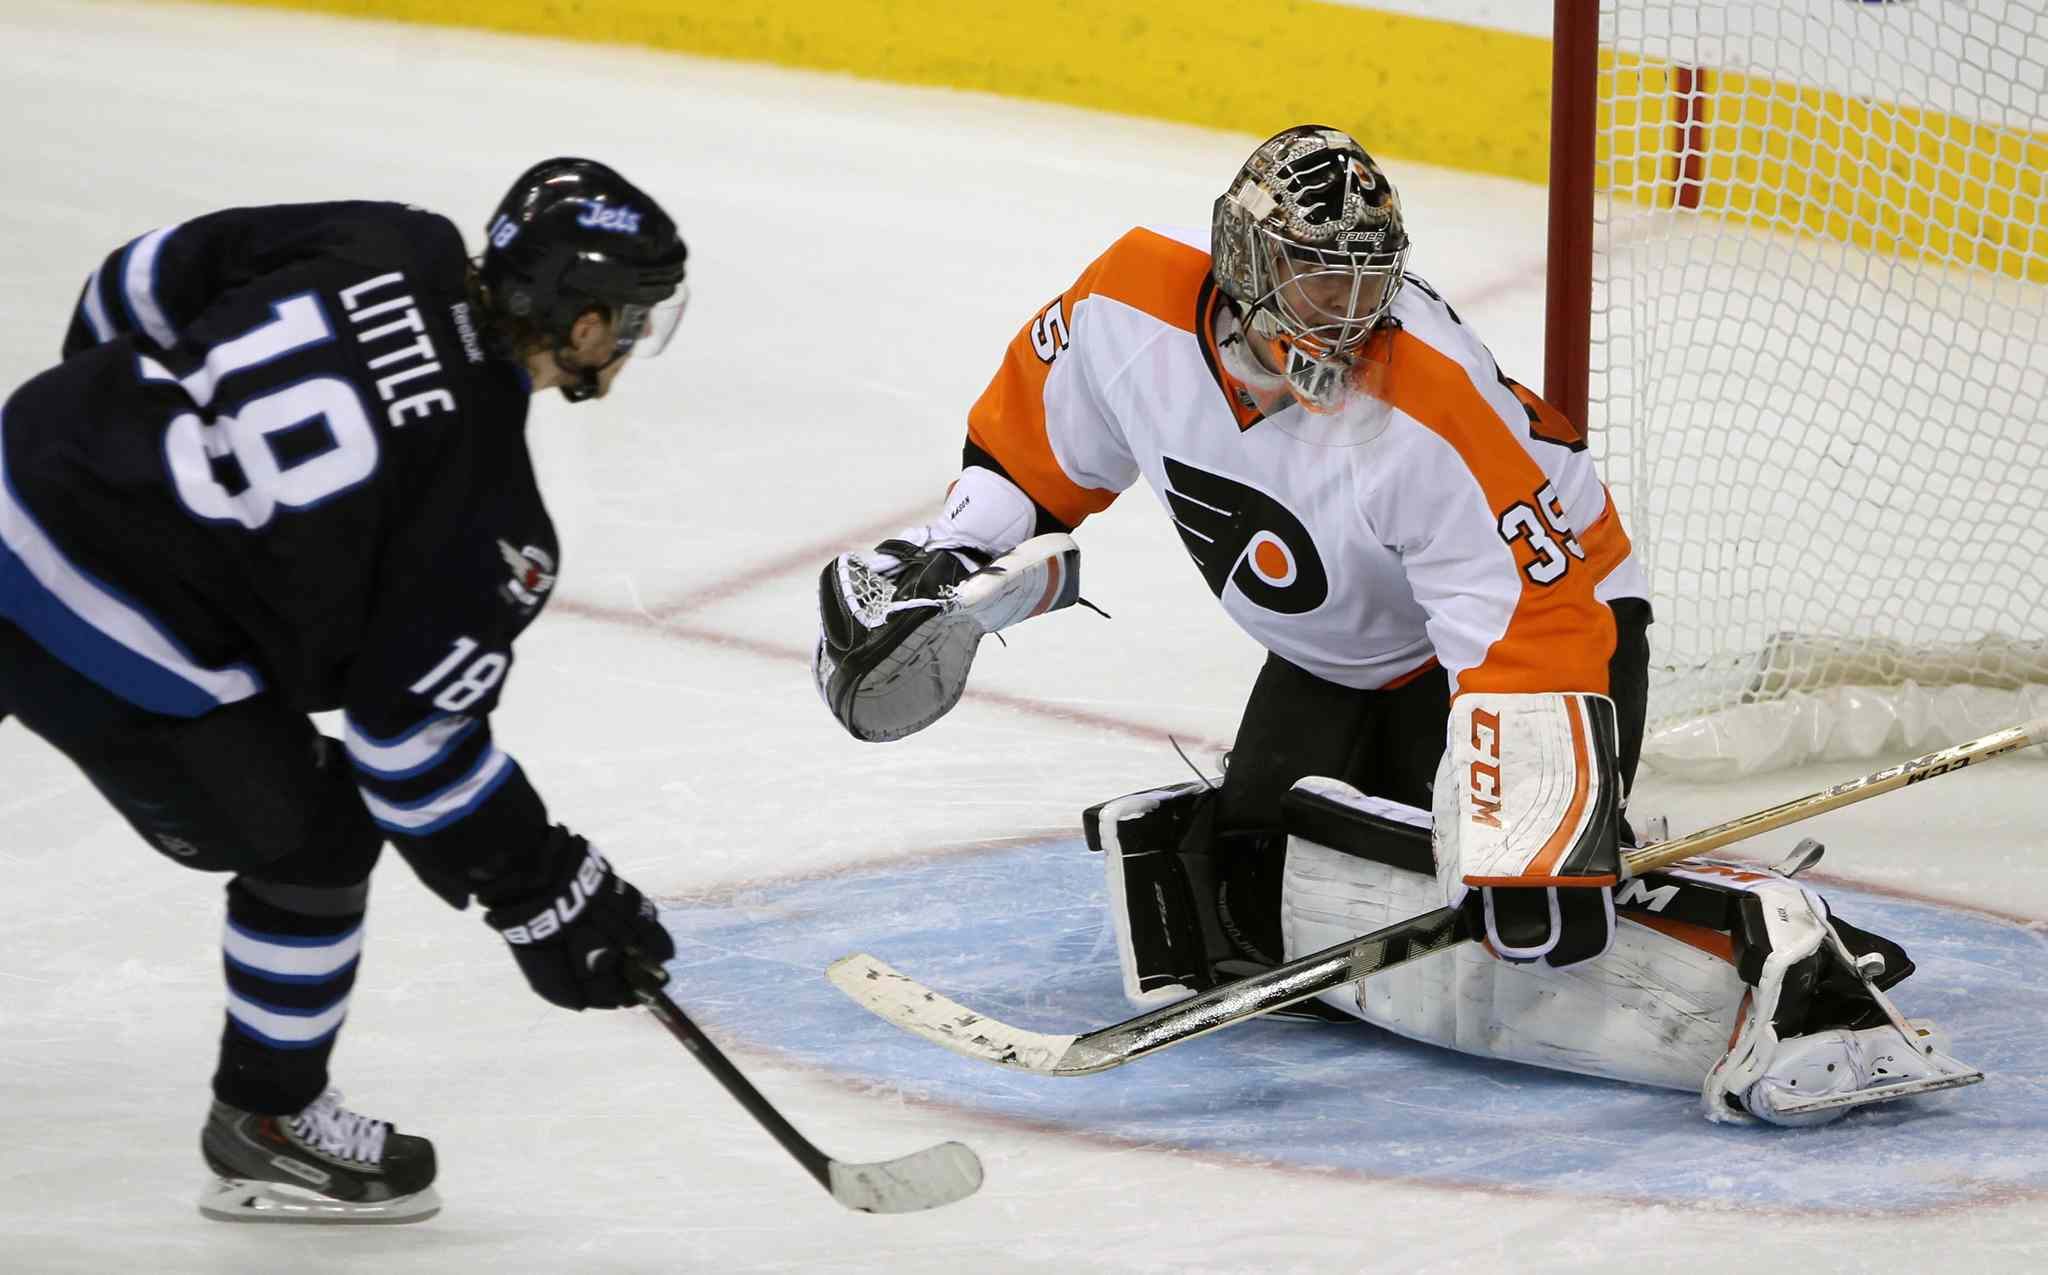 Winnipeg Jets forward Bryan Little scores the game-winner on Philadelphia Flyers goalie Steve Mason in a shootout Friday night.